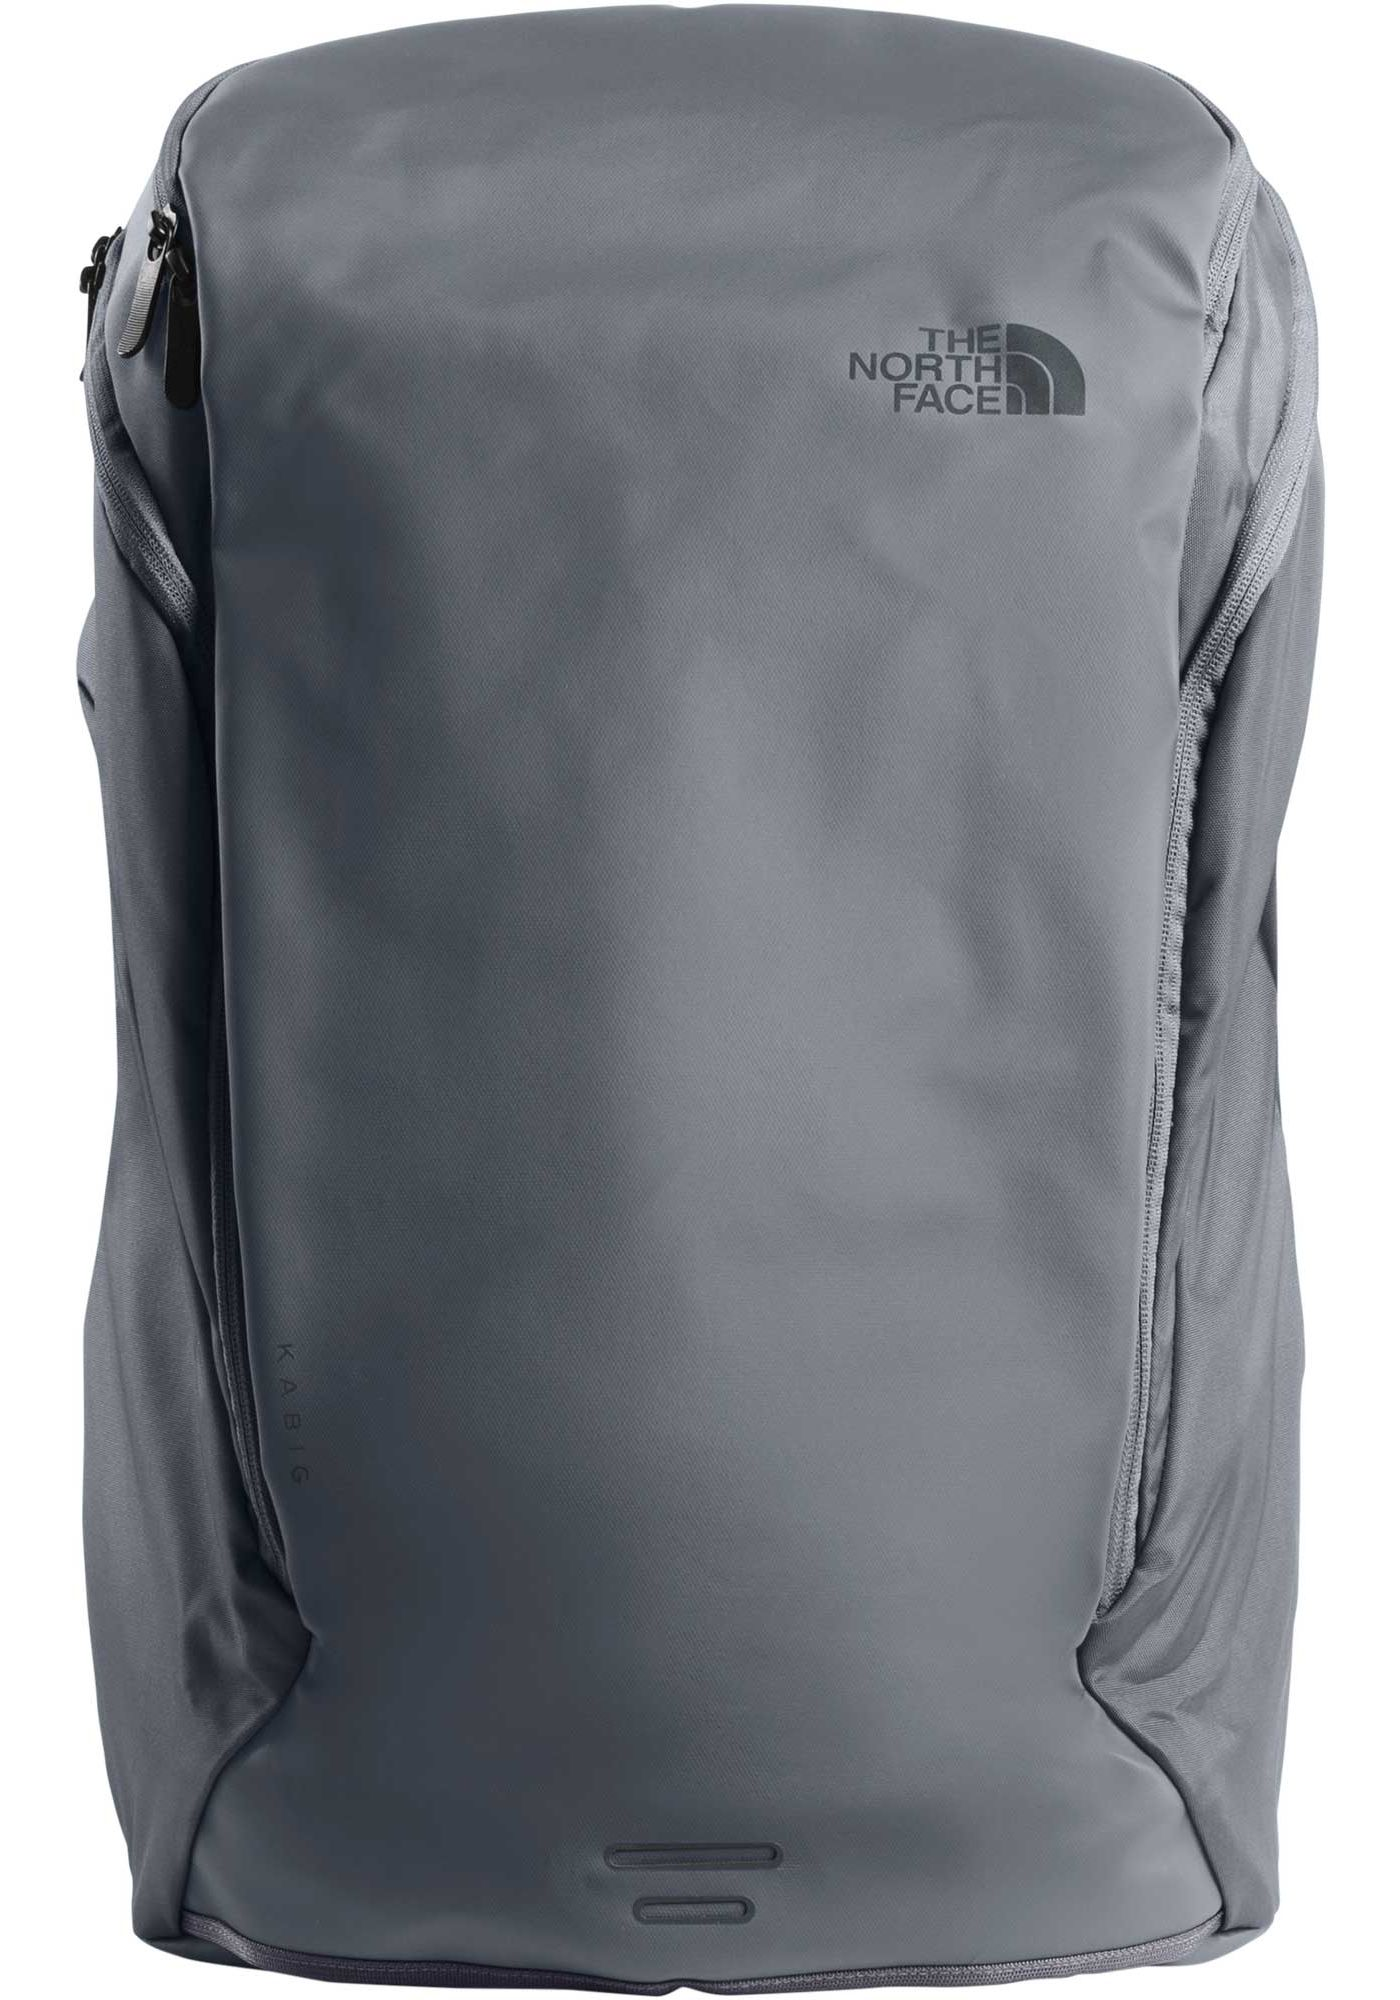 The North Face Kabig Backpack - Prior Season